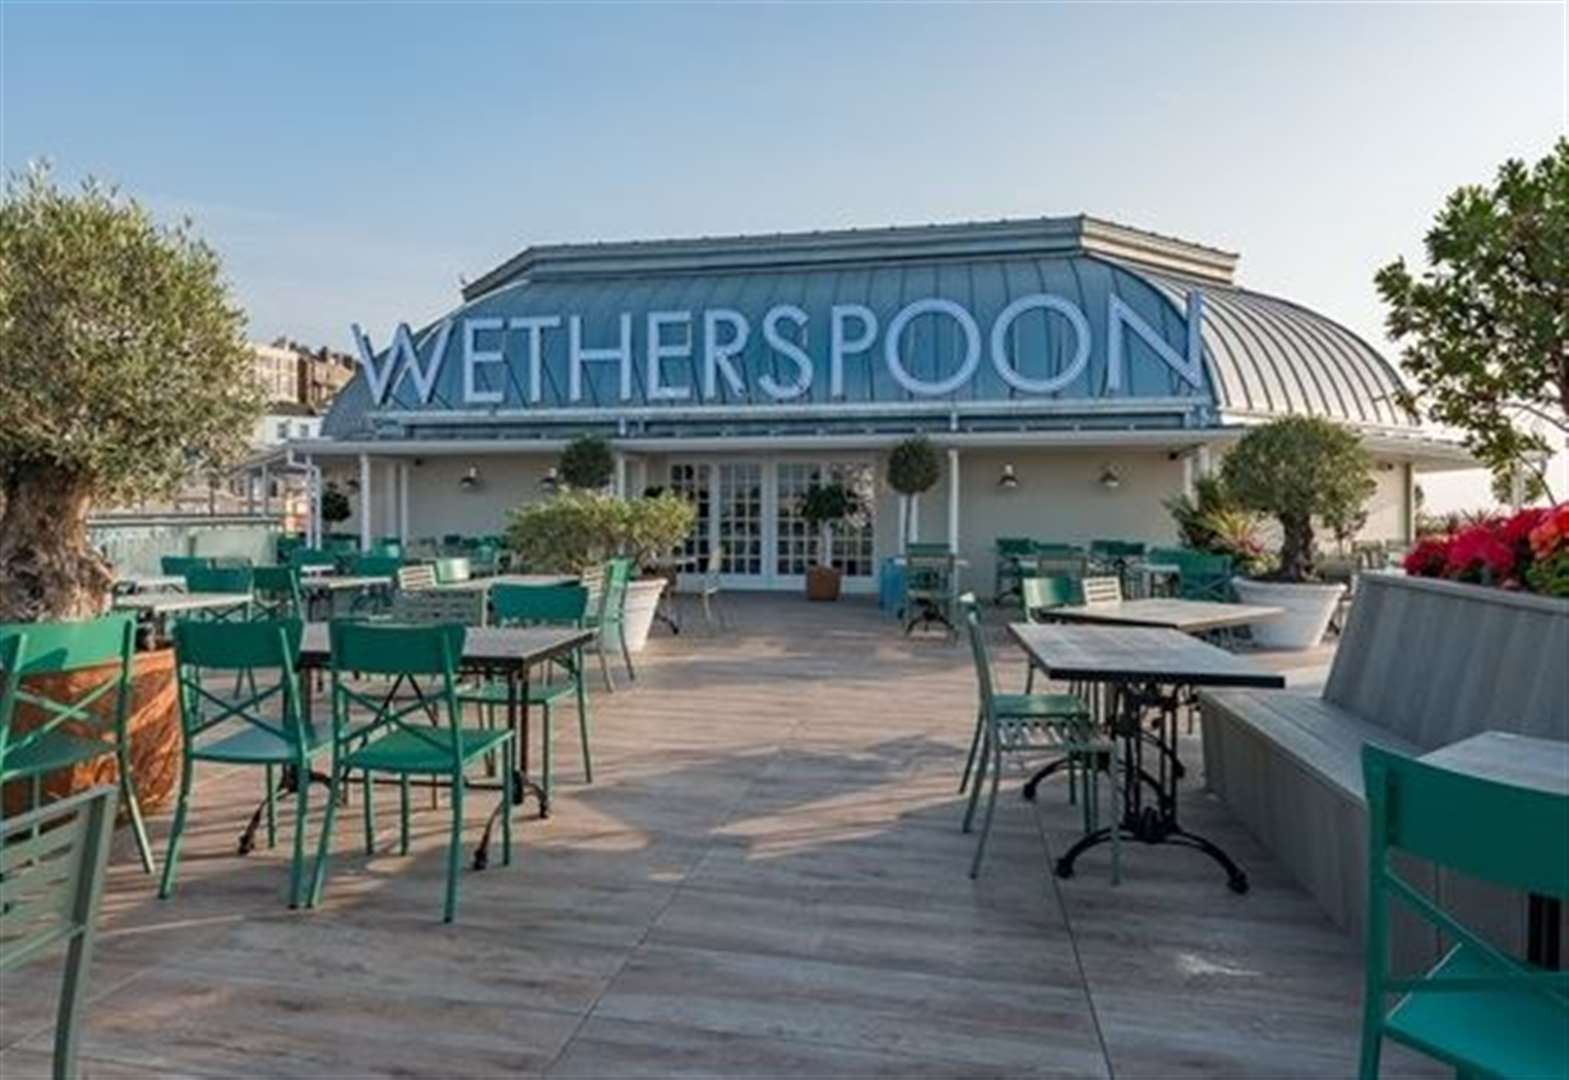 Wetherspoon to plough £200m into pubs